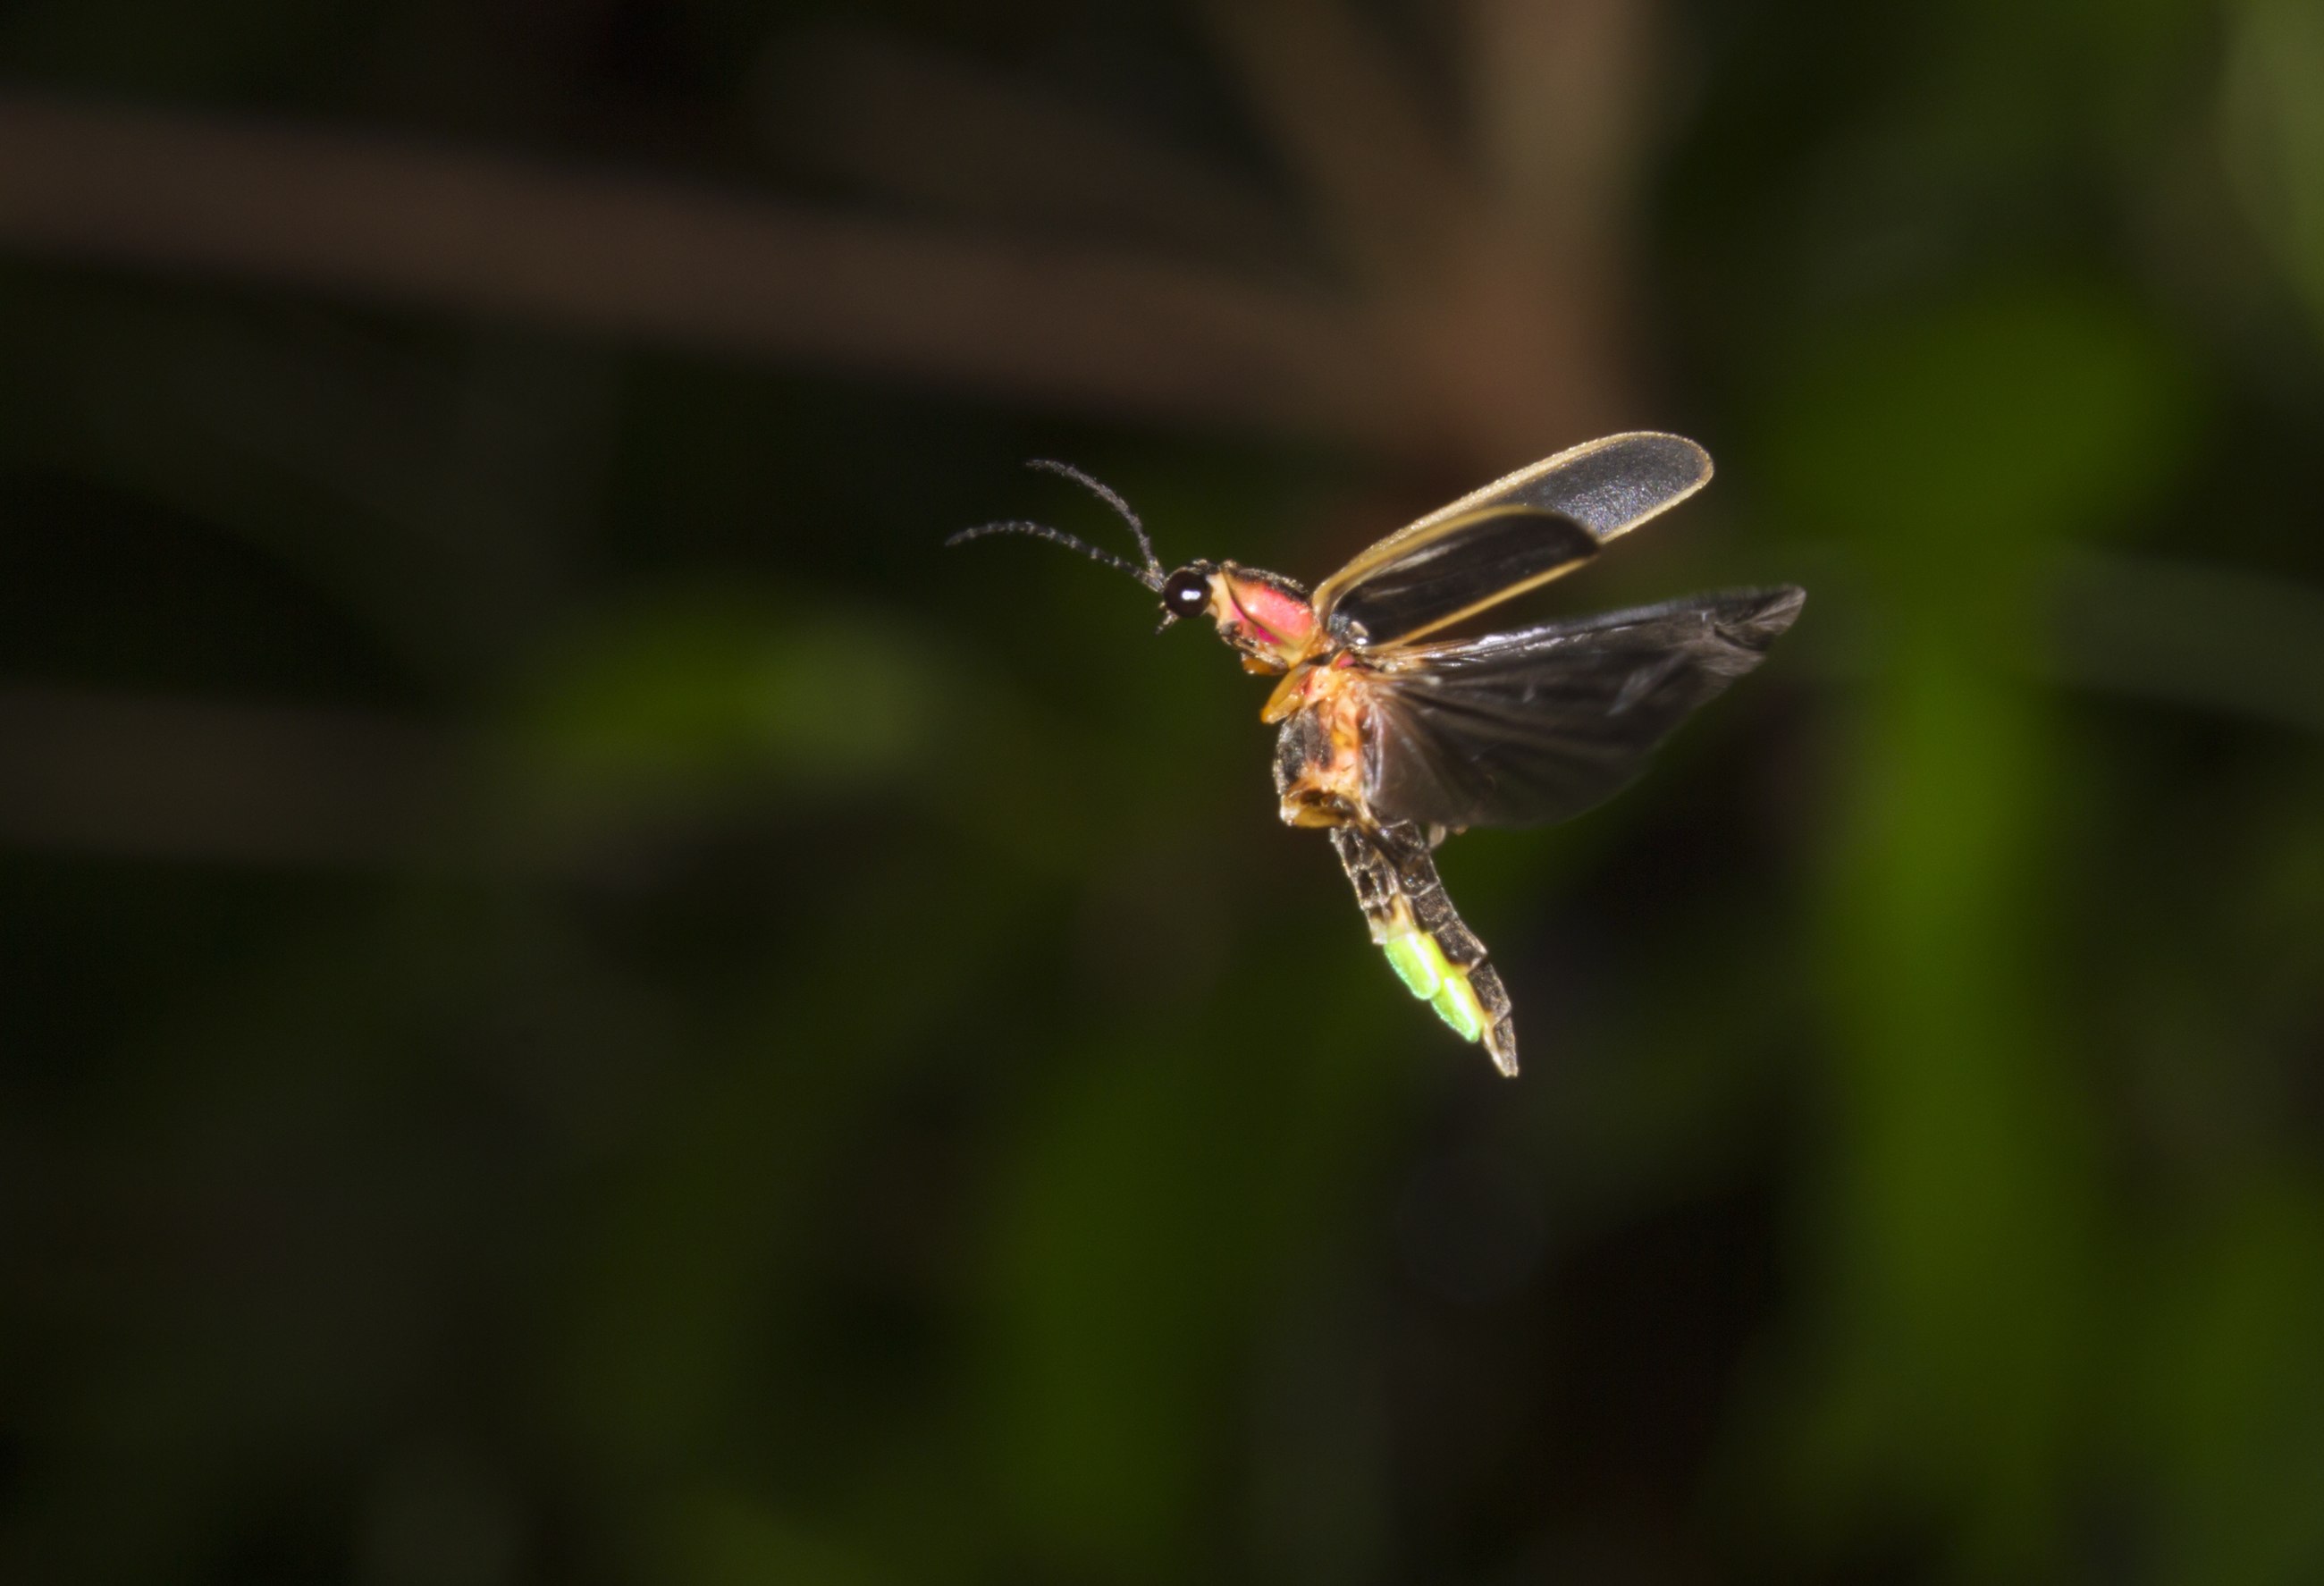 Fireflies Need the Dark to Talk with Light Image